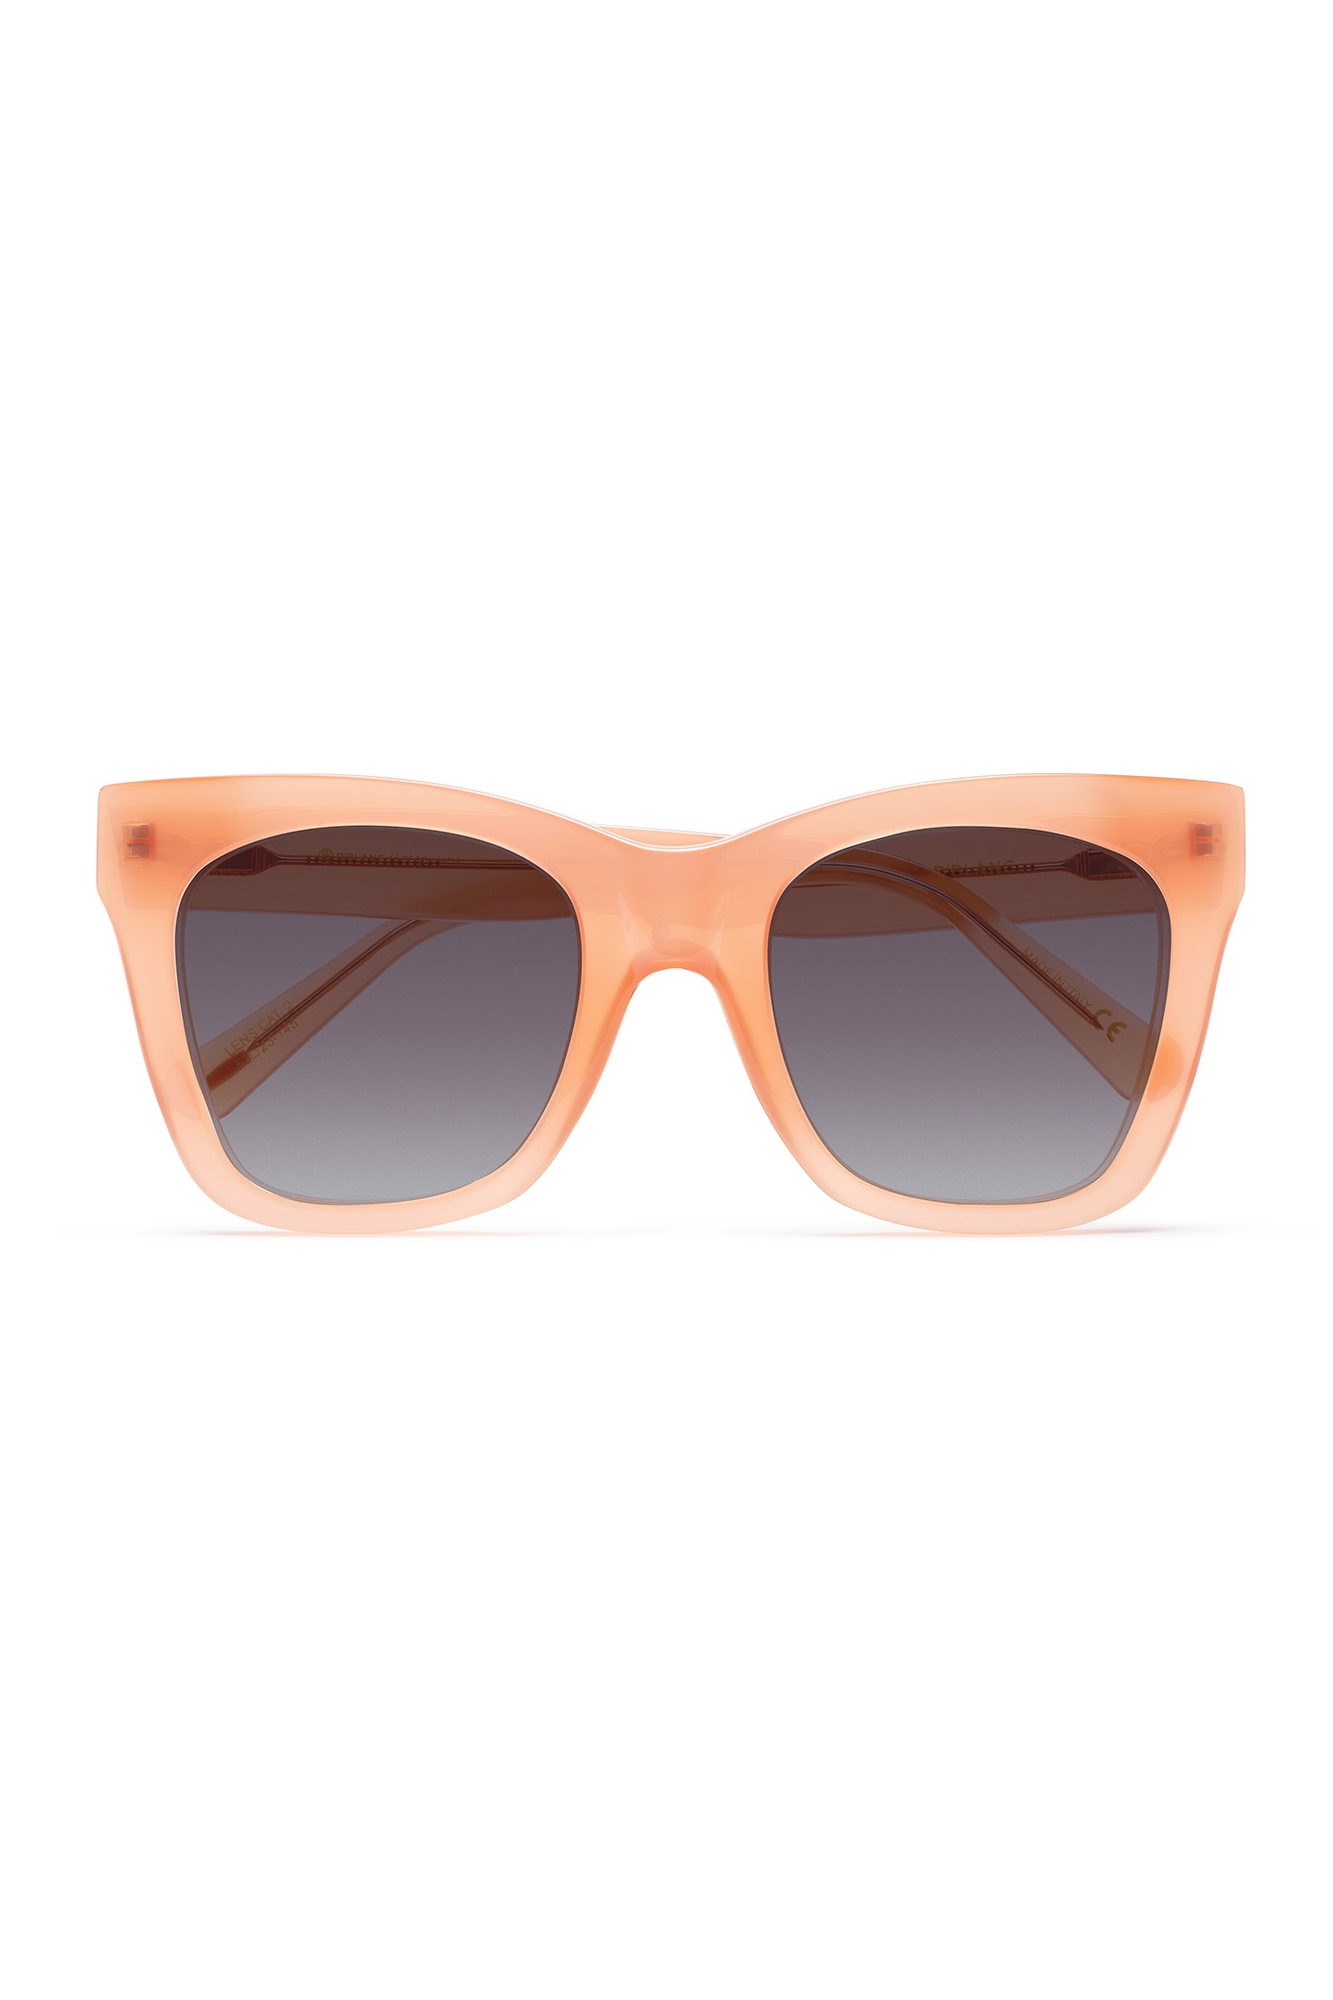 Amuse for D'Blanc Beach Vida Sunglasses